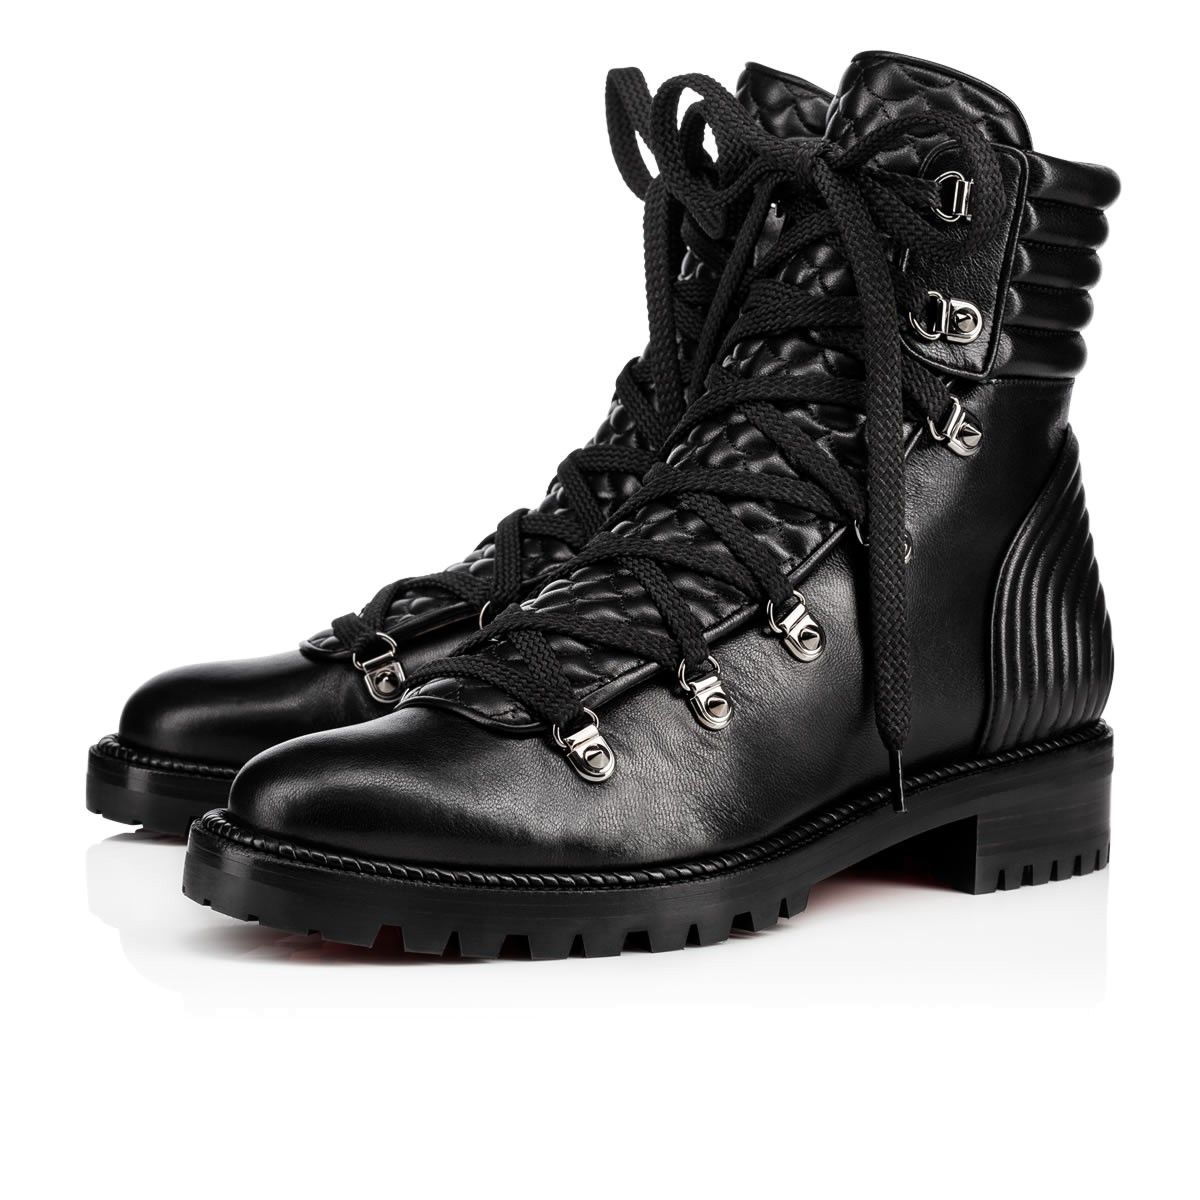 brand new f84d8 23eb5 CHRISTIAN LOUBOUTIN Mad Boot Flat Black Leather - Women ...